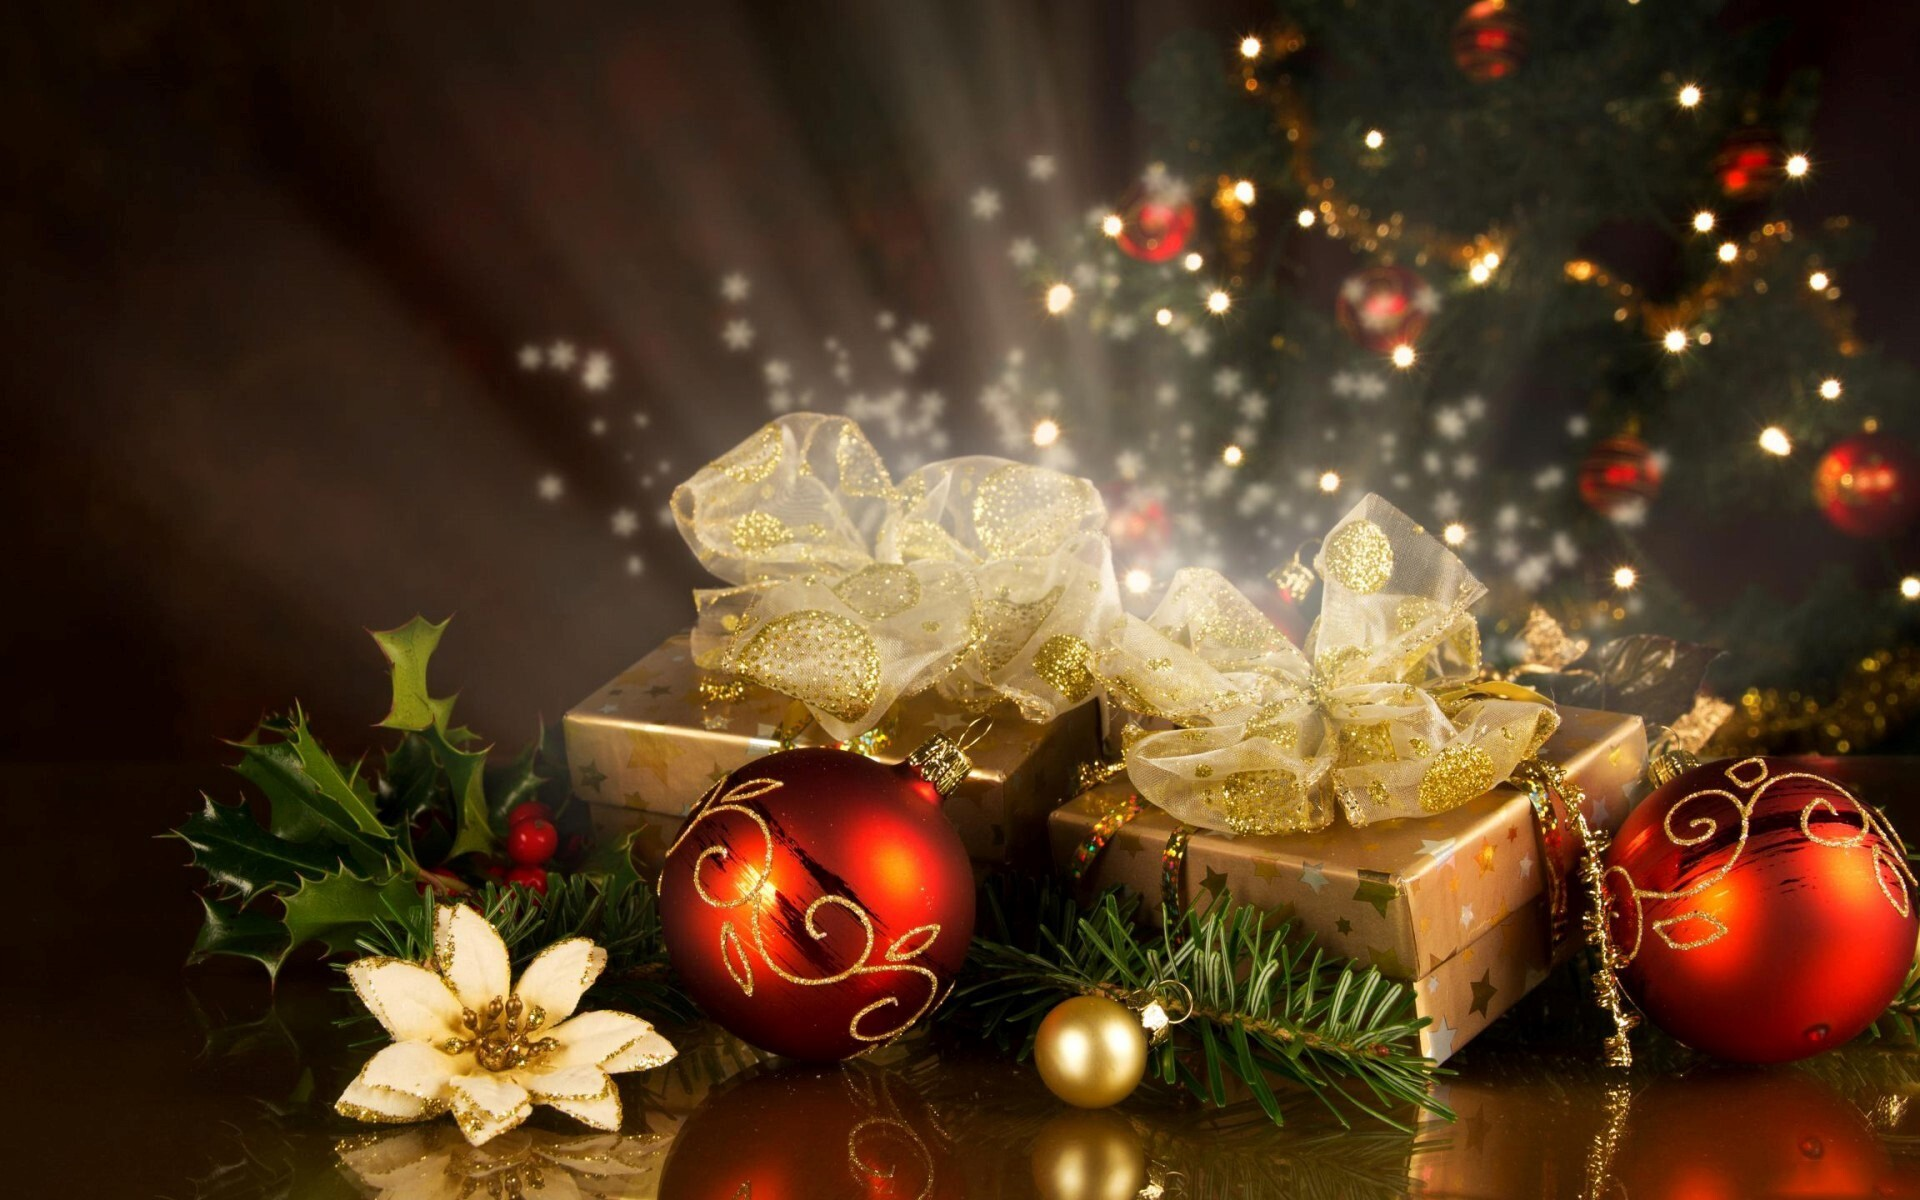 Christmas Gifts and Decoration Balls on 2013 Festival HD Wallpapers ...